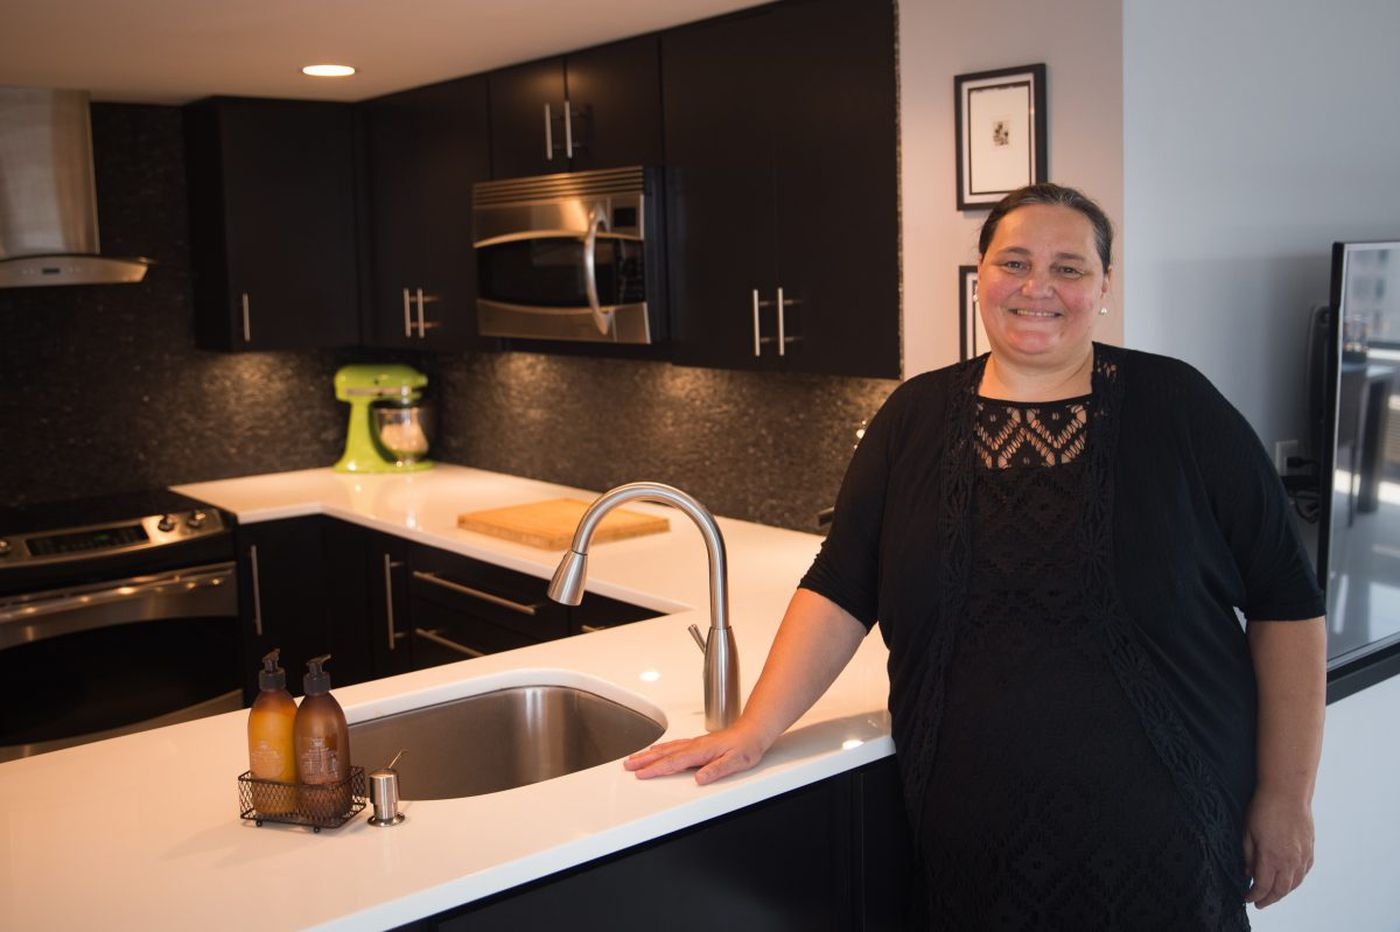 Living the maintenance-free condo life that they wanted